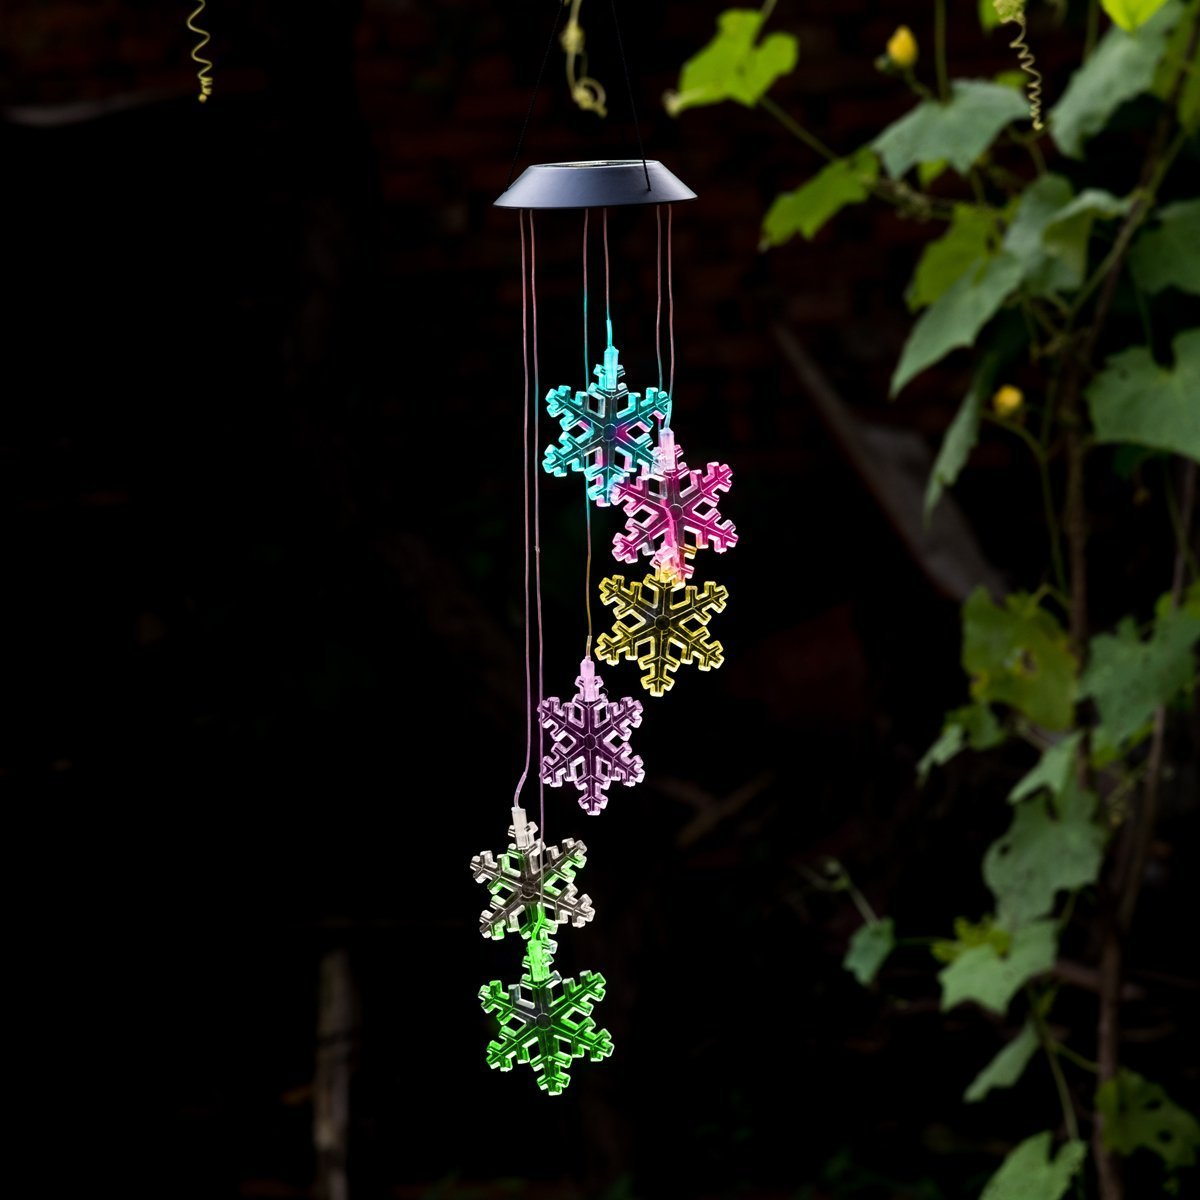 Wishshopping Color-Changing Wind Chime, Solar Power Wind Chimes Lights Hanging Lamp Night Light For Home, Party, Festival Days, Garden,Christmas with Spinning Hook